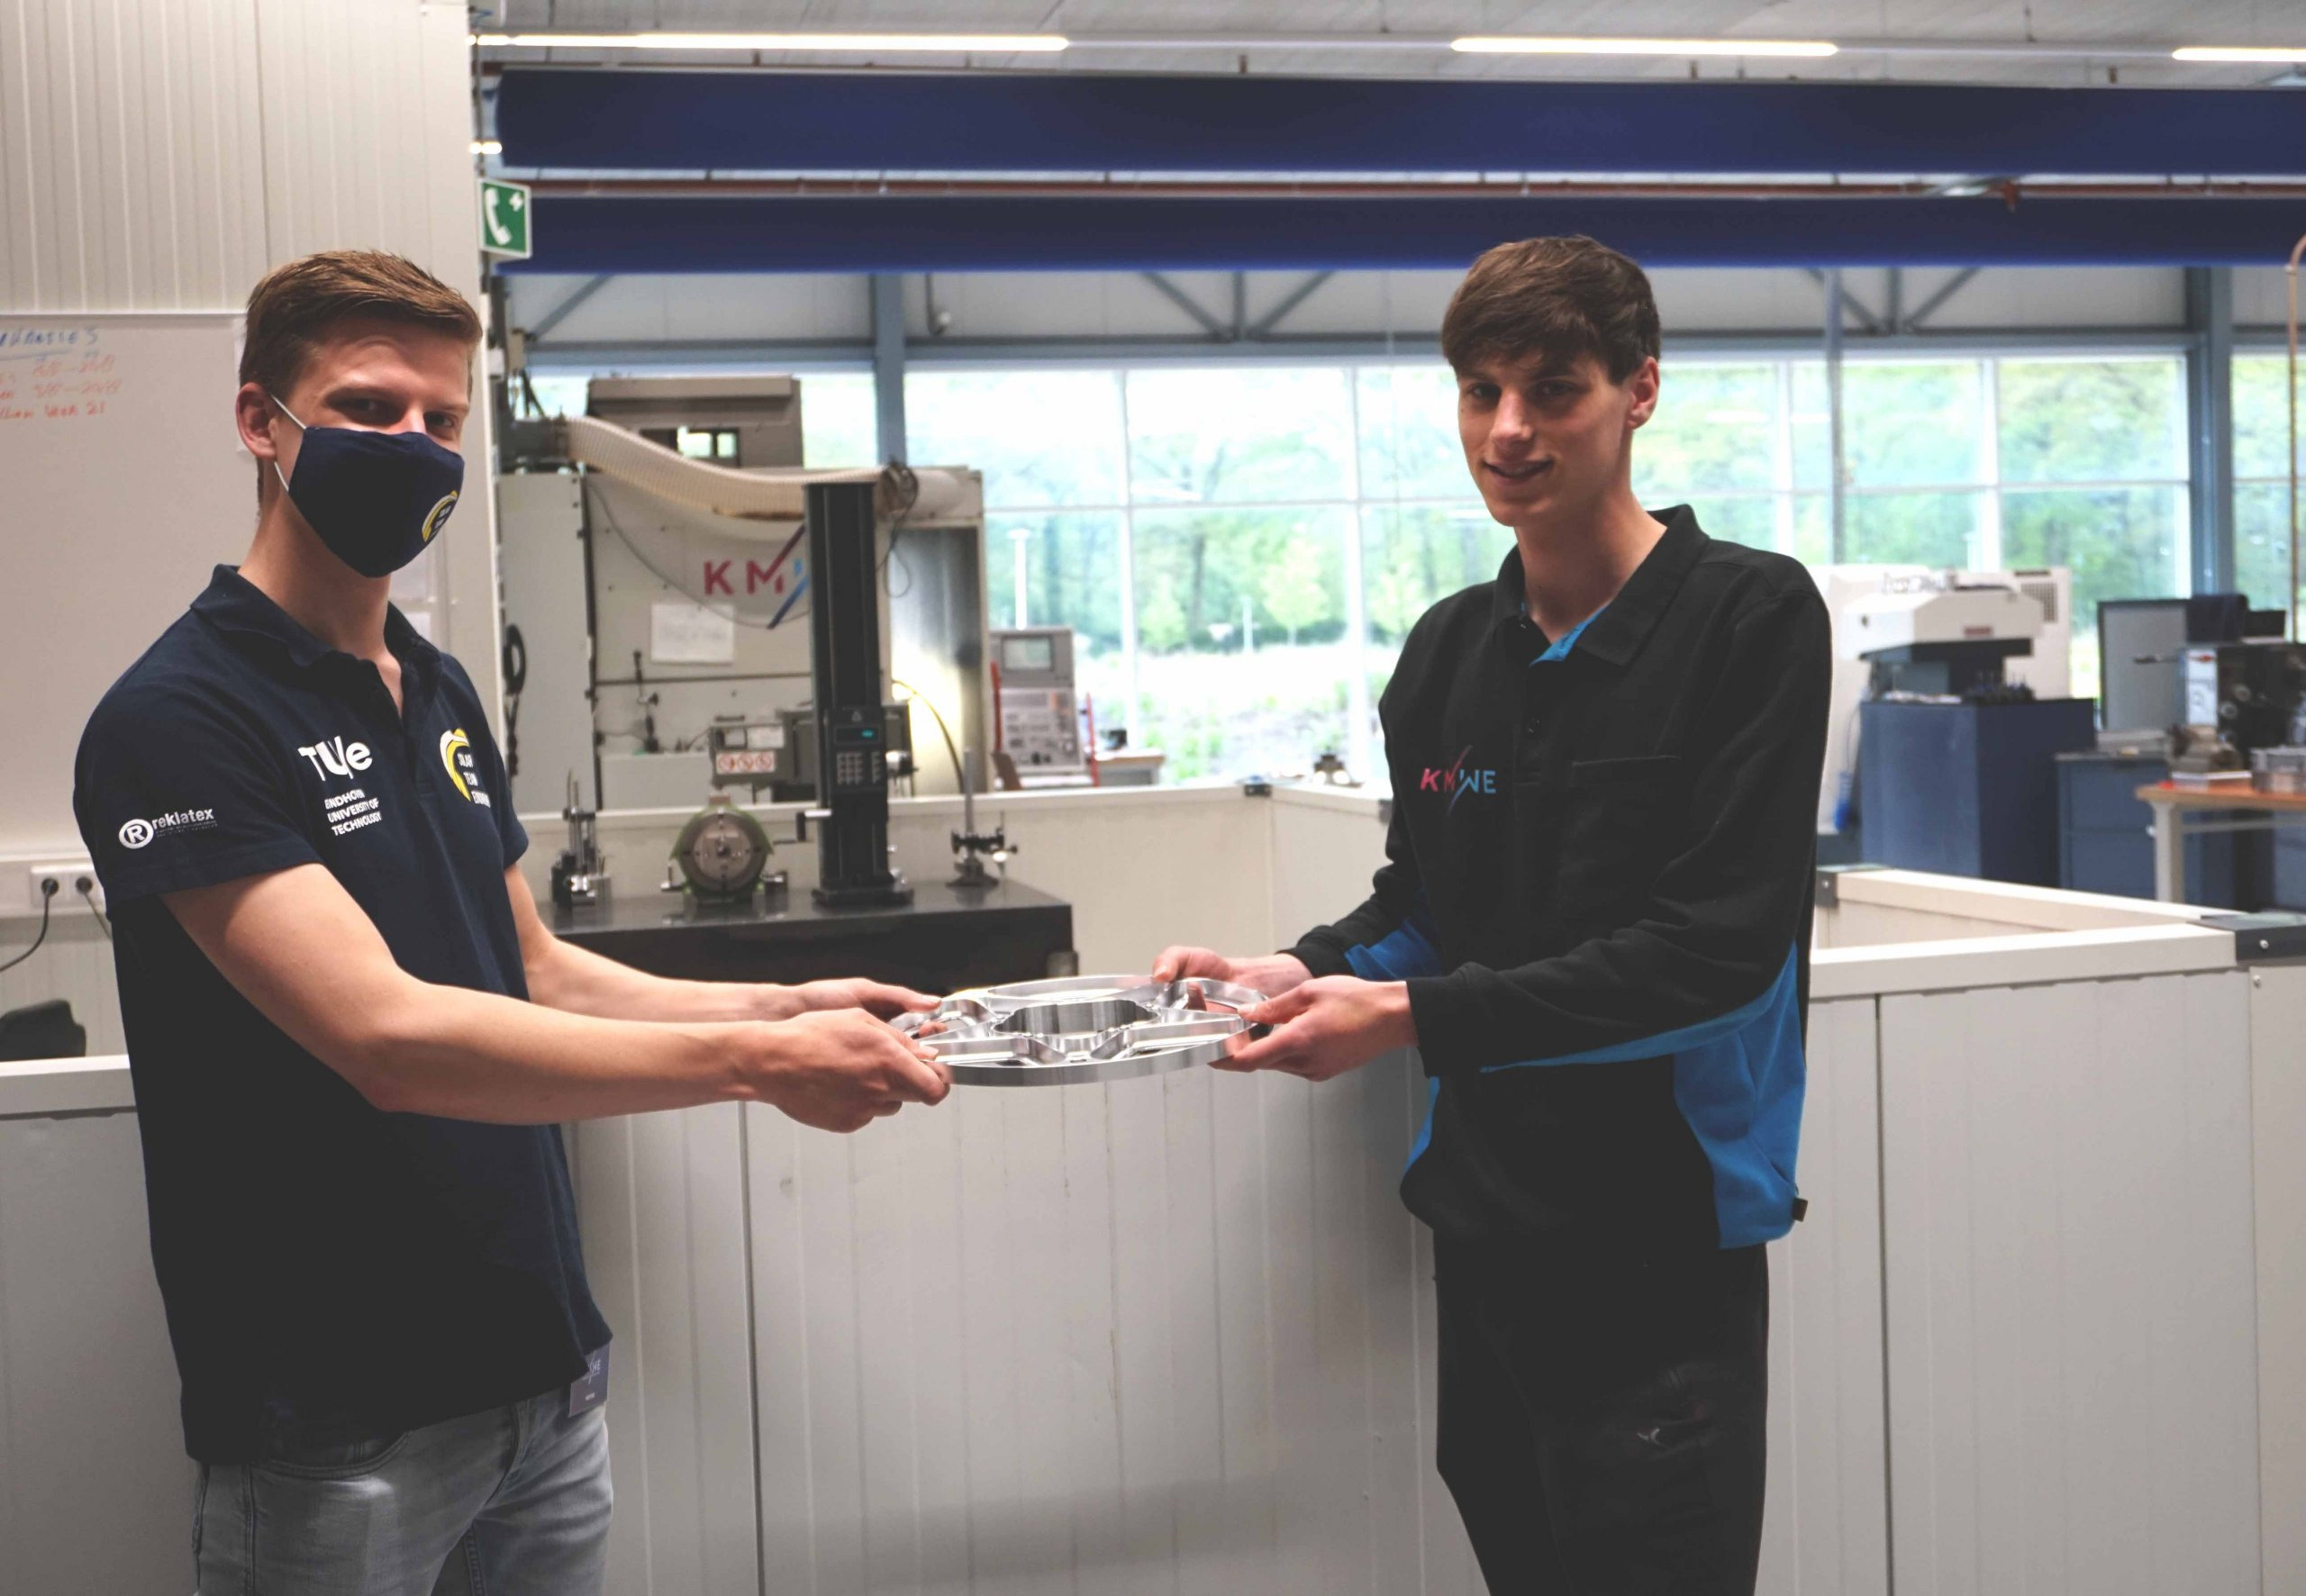 The ecosystem of Brainport Industries Campus in a nutshell! Students of Summa Technics got at KMWE the possibility to make parts of the SHOW of Solar Team Eindhoven.